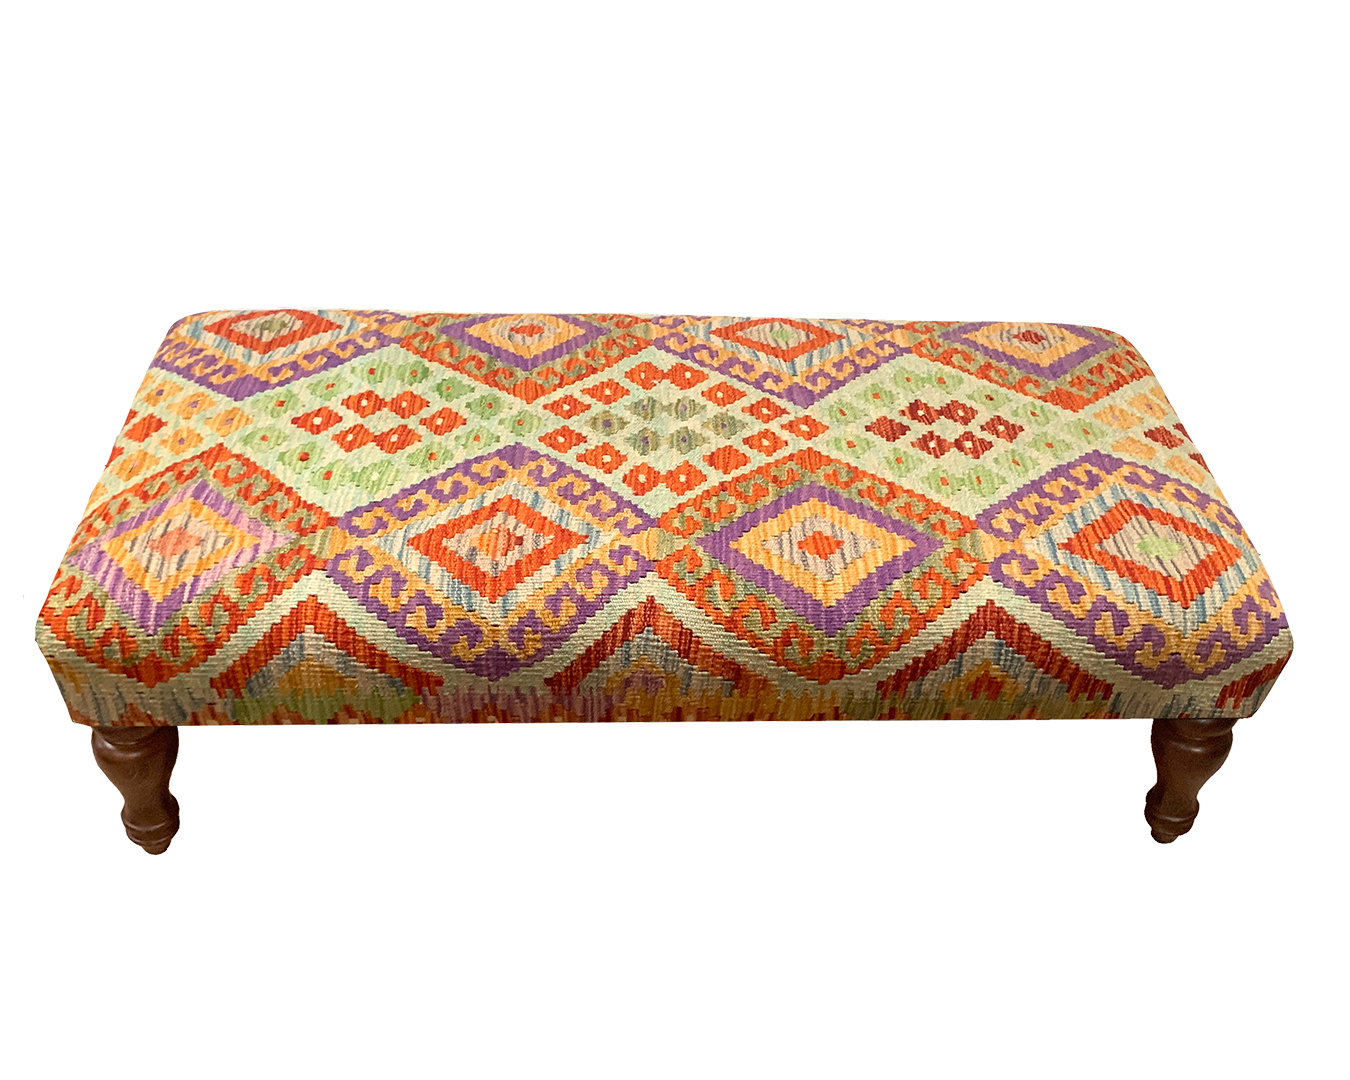 120cmsx60cms Kilim Table Stool